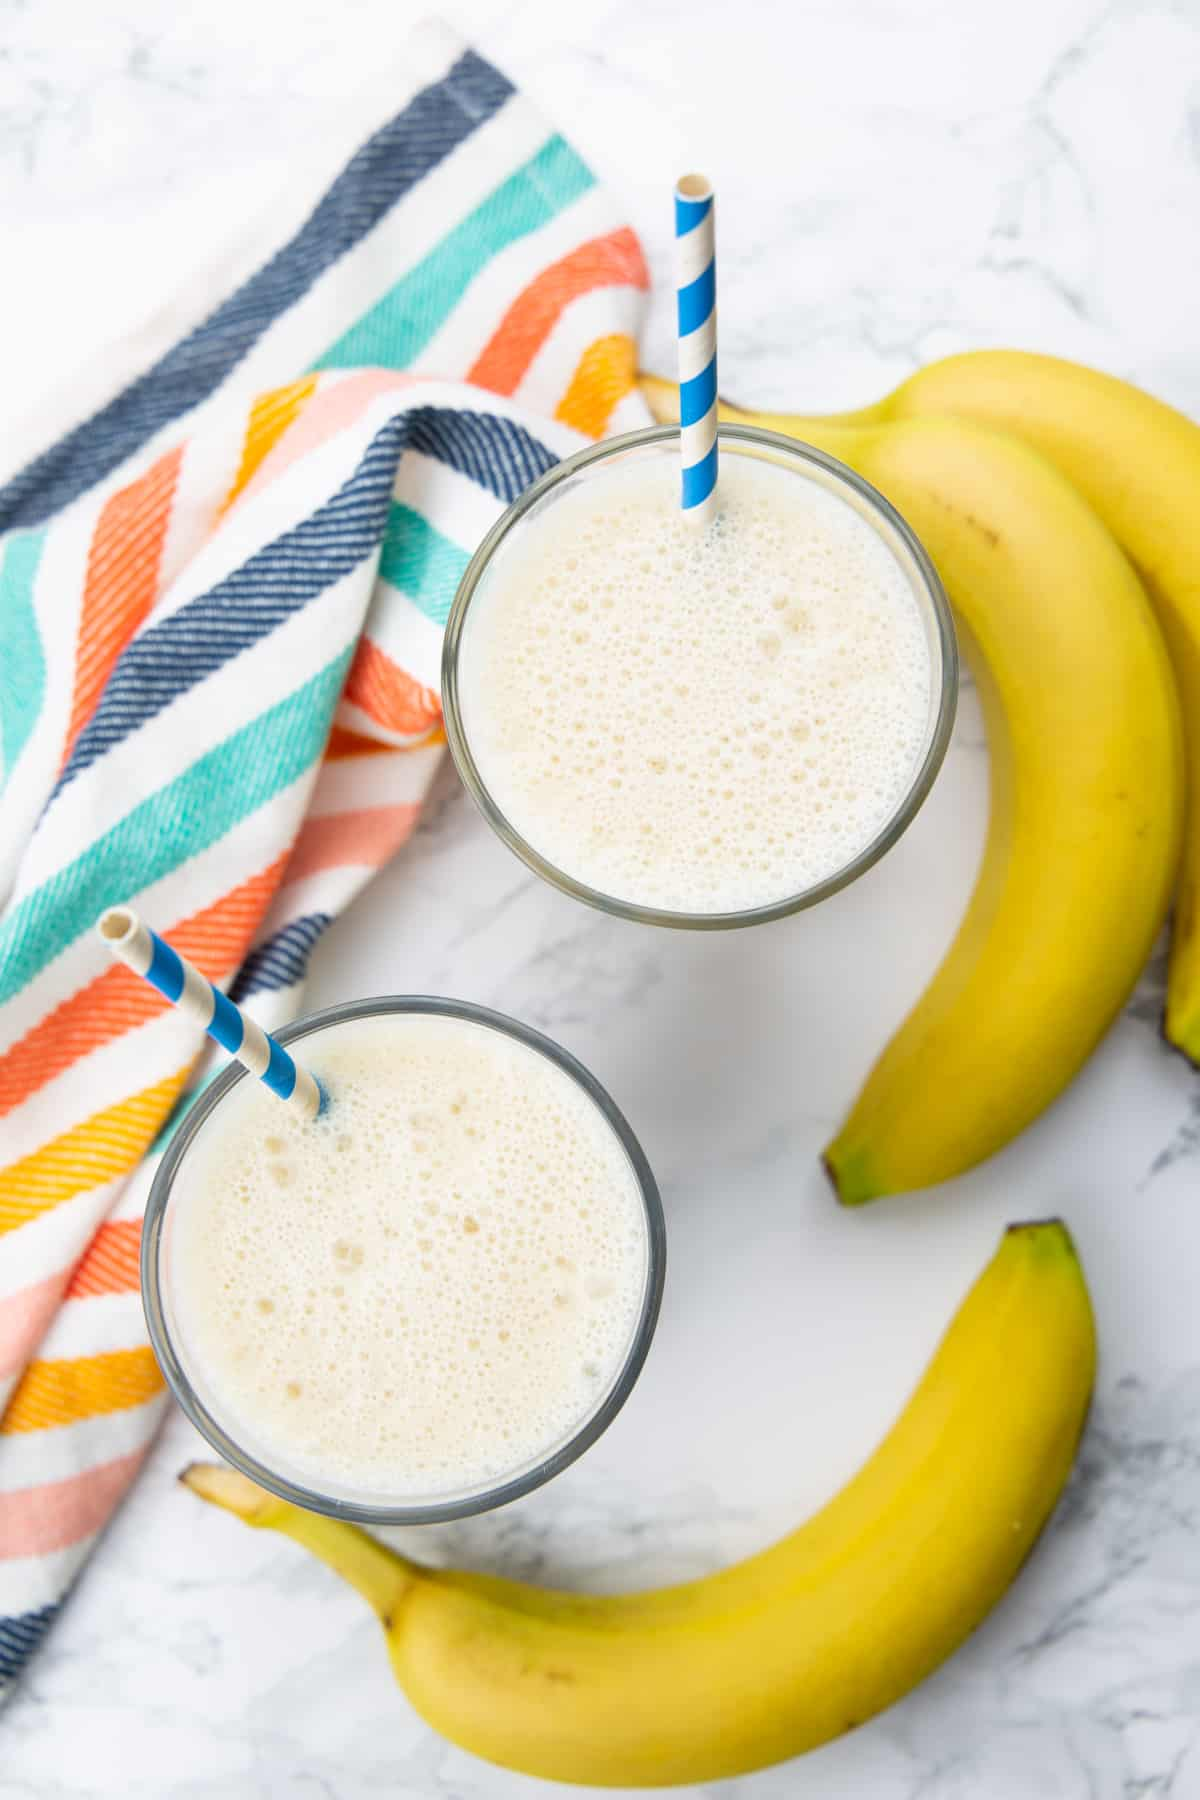 two glasses of banana milk on a marble countertop with bananas on the side